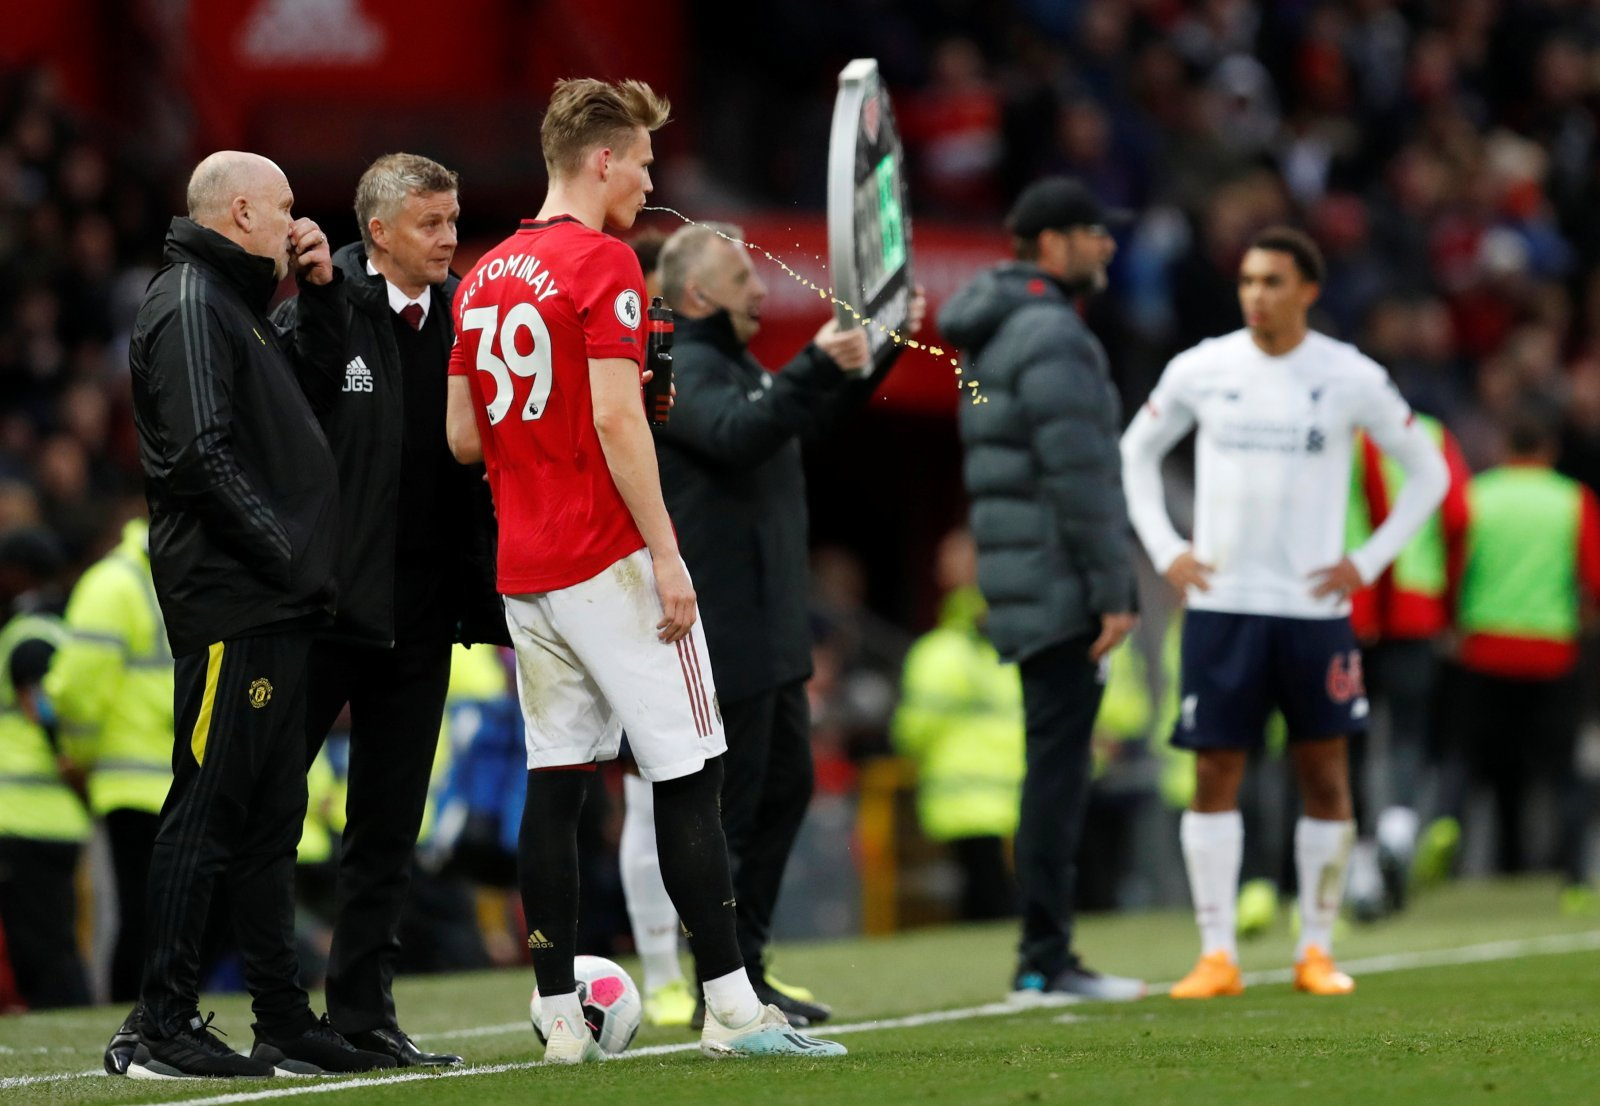 Unsung Hero: Manchester United's Scott McTominay performs brilliantly as Liverpool's winning streak ends